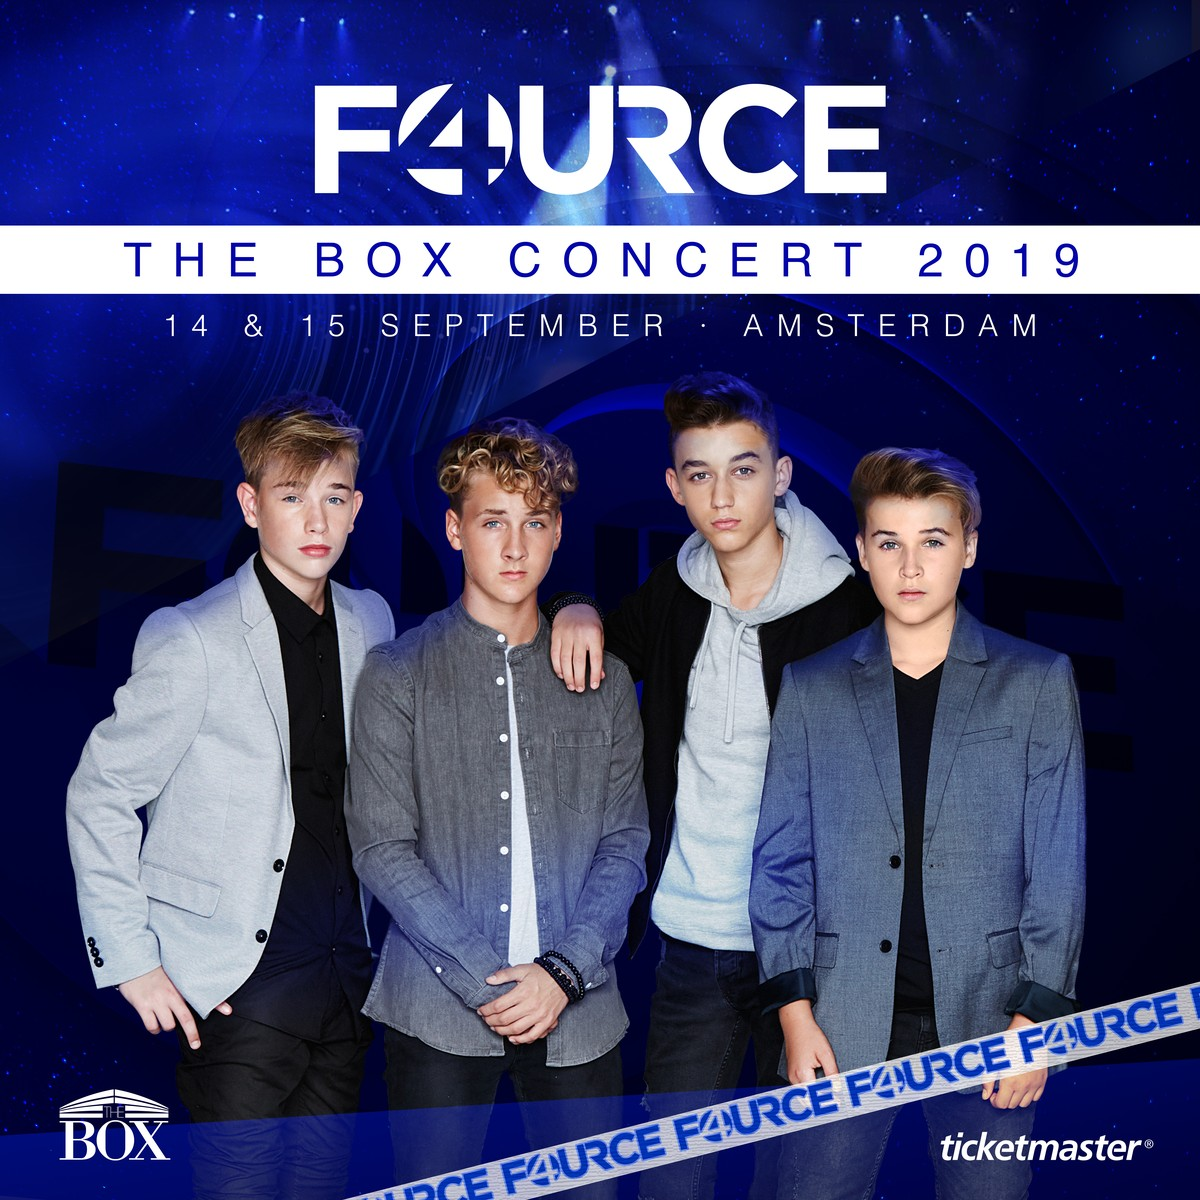 FOURCE THE BOX concert 2019 POSTER -square1200.jpg